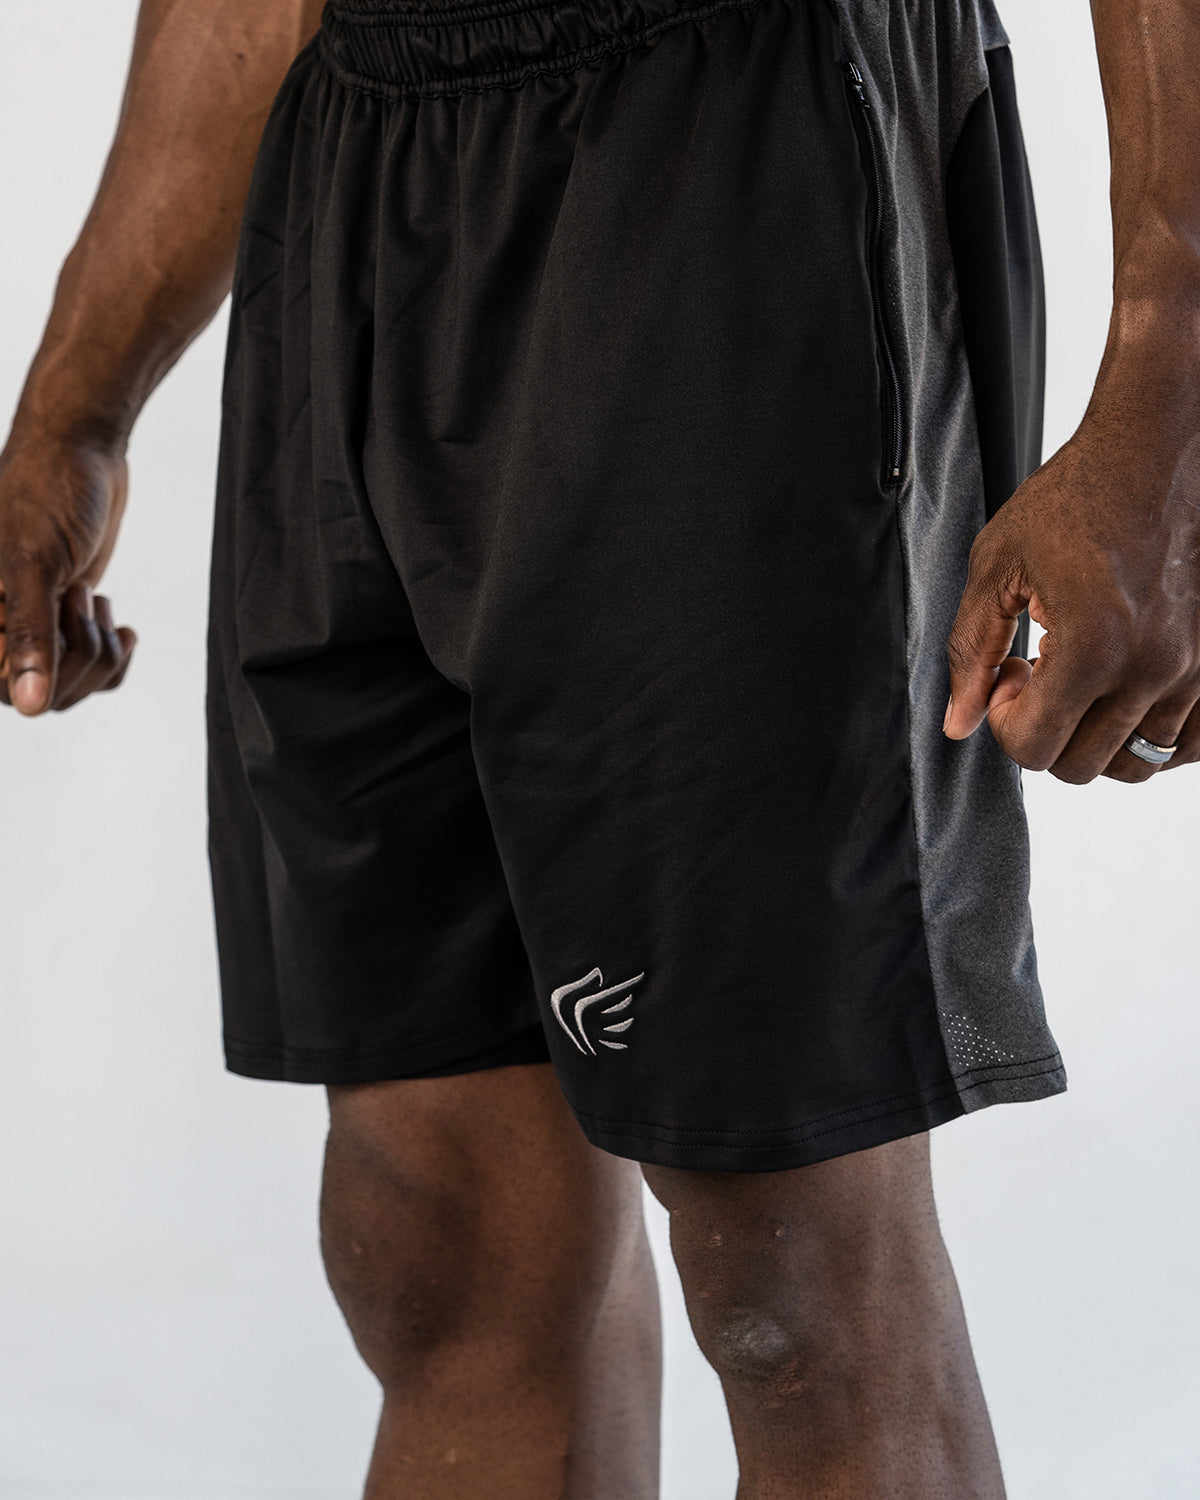 Men's EasyDri Training Shorts 2.0